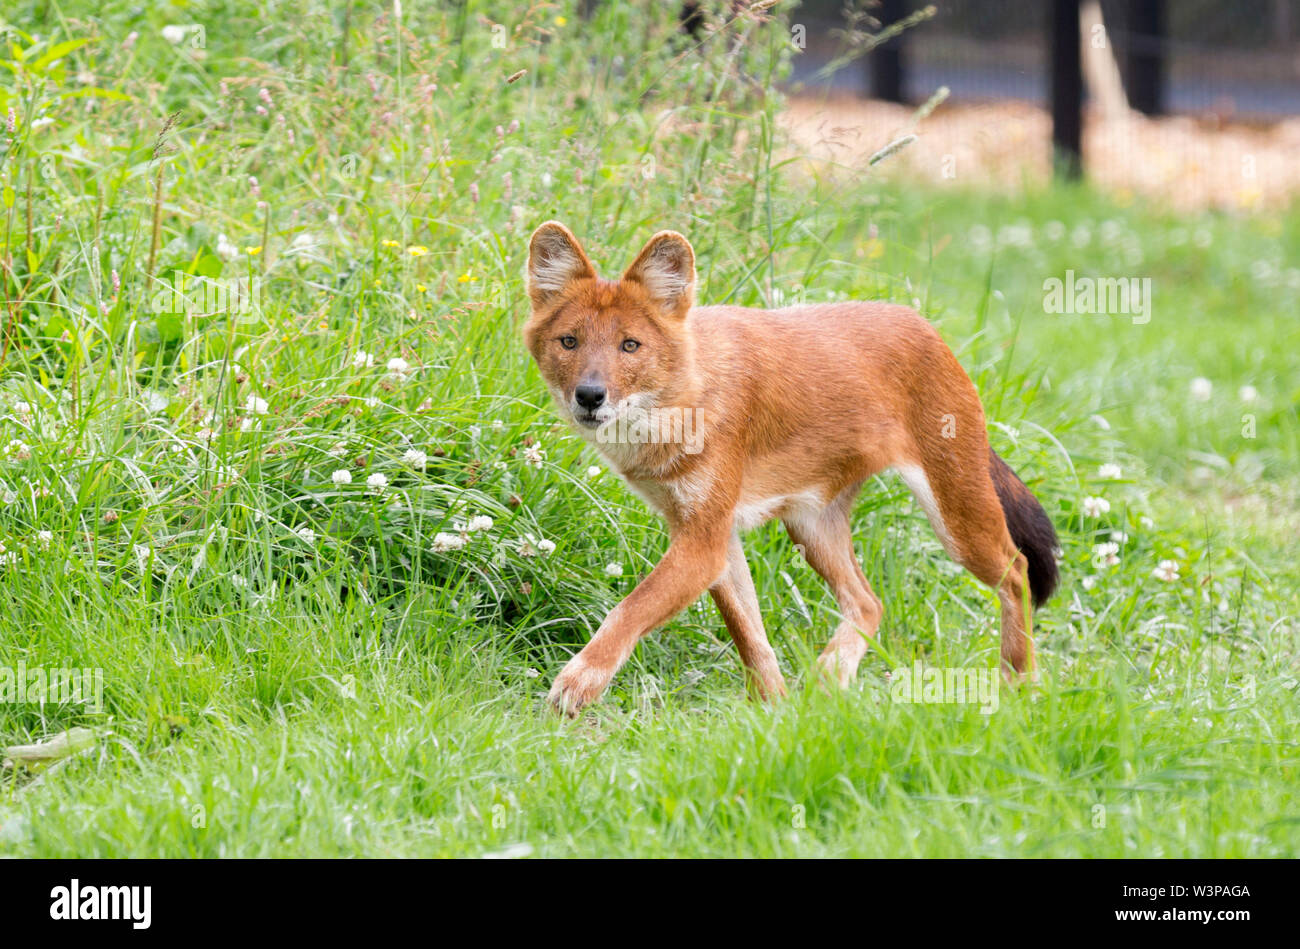 The dhole (Cuon alpinus) is a canid native to Central, South